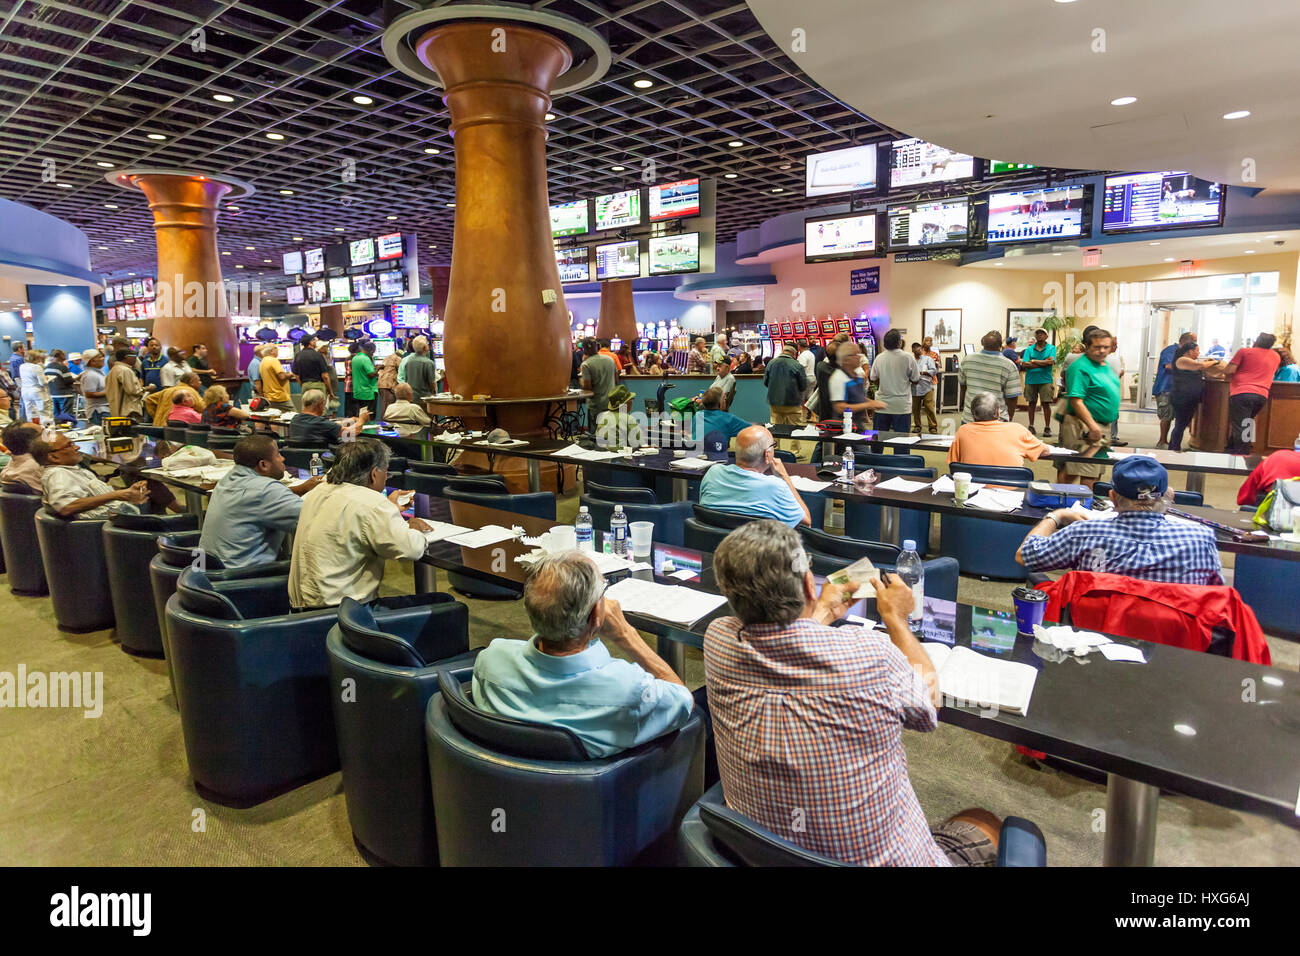 HALLANDALE BEACH, USA - MAR 11, 2017: People betting and gambling in the Gulfstream park casino in Hallandale Beach. - Stock Image